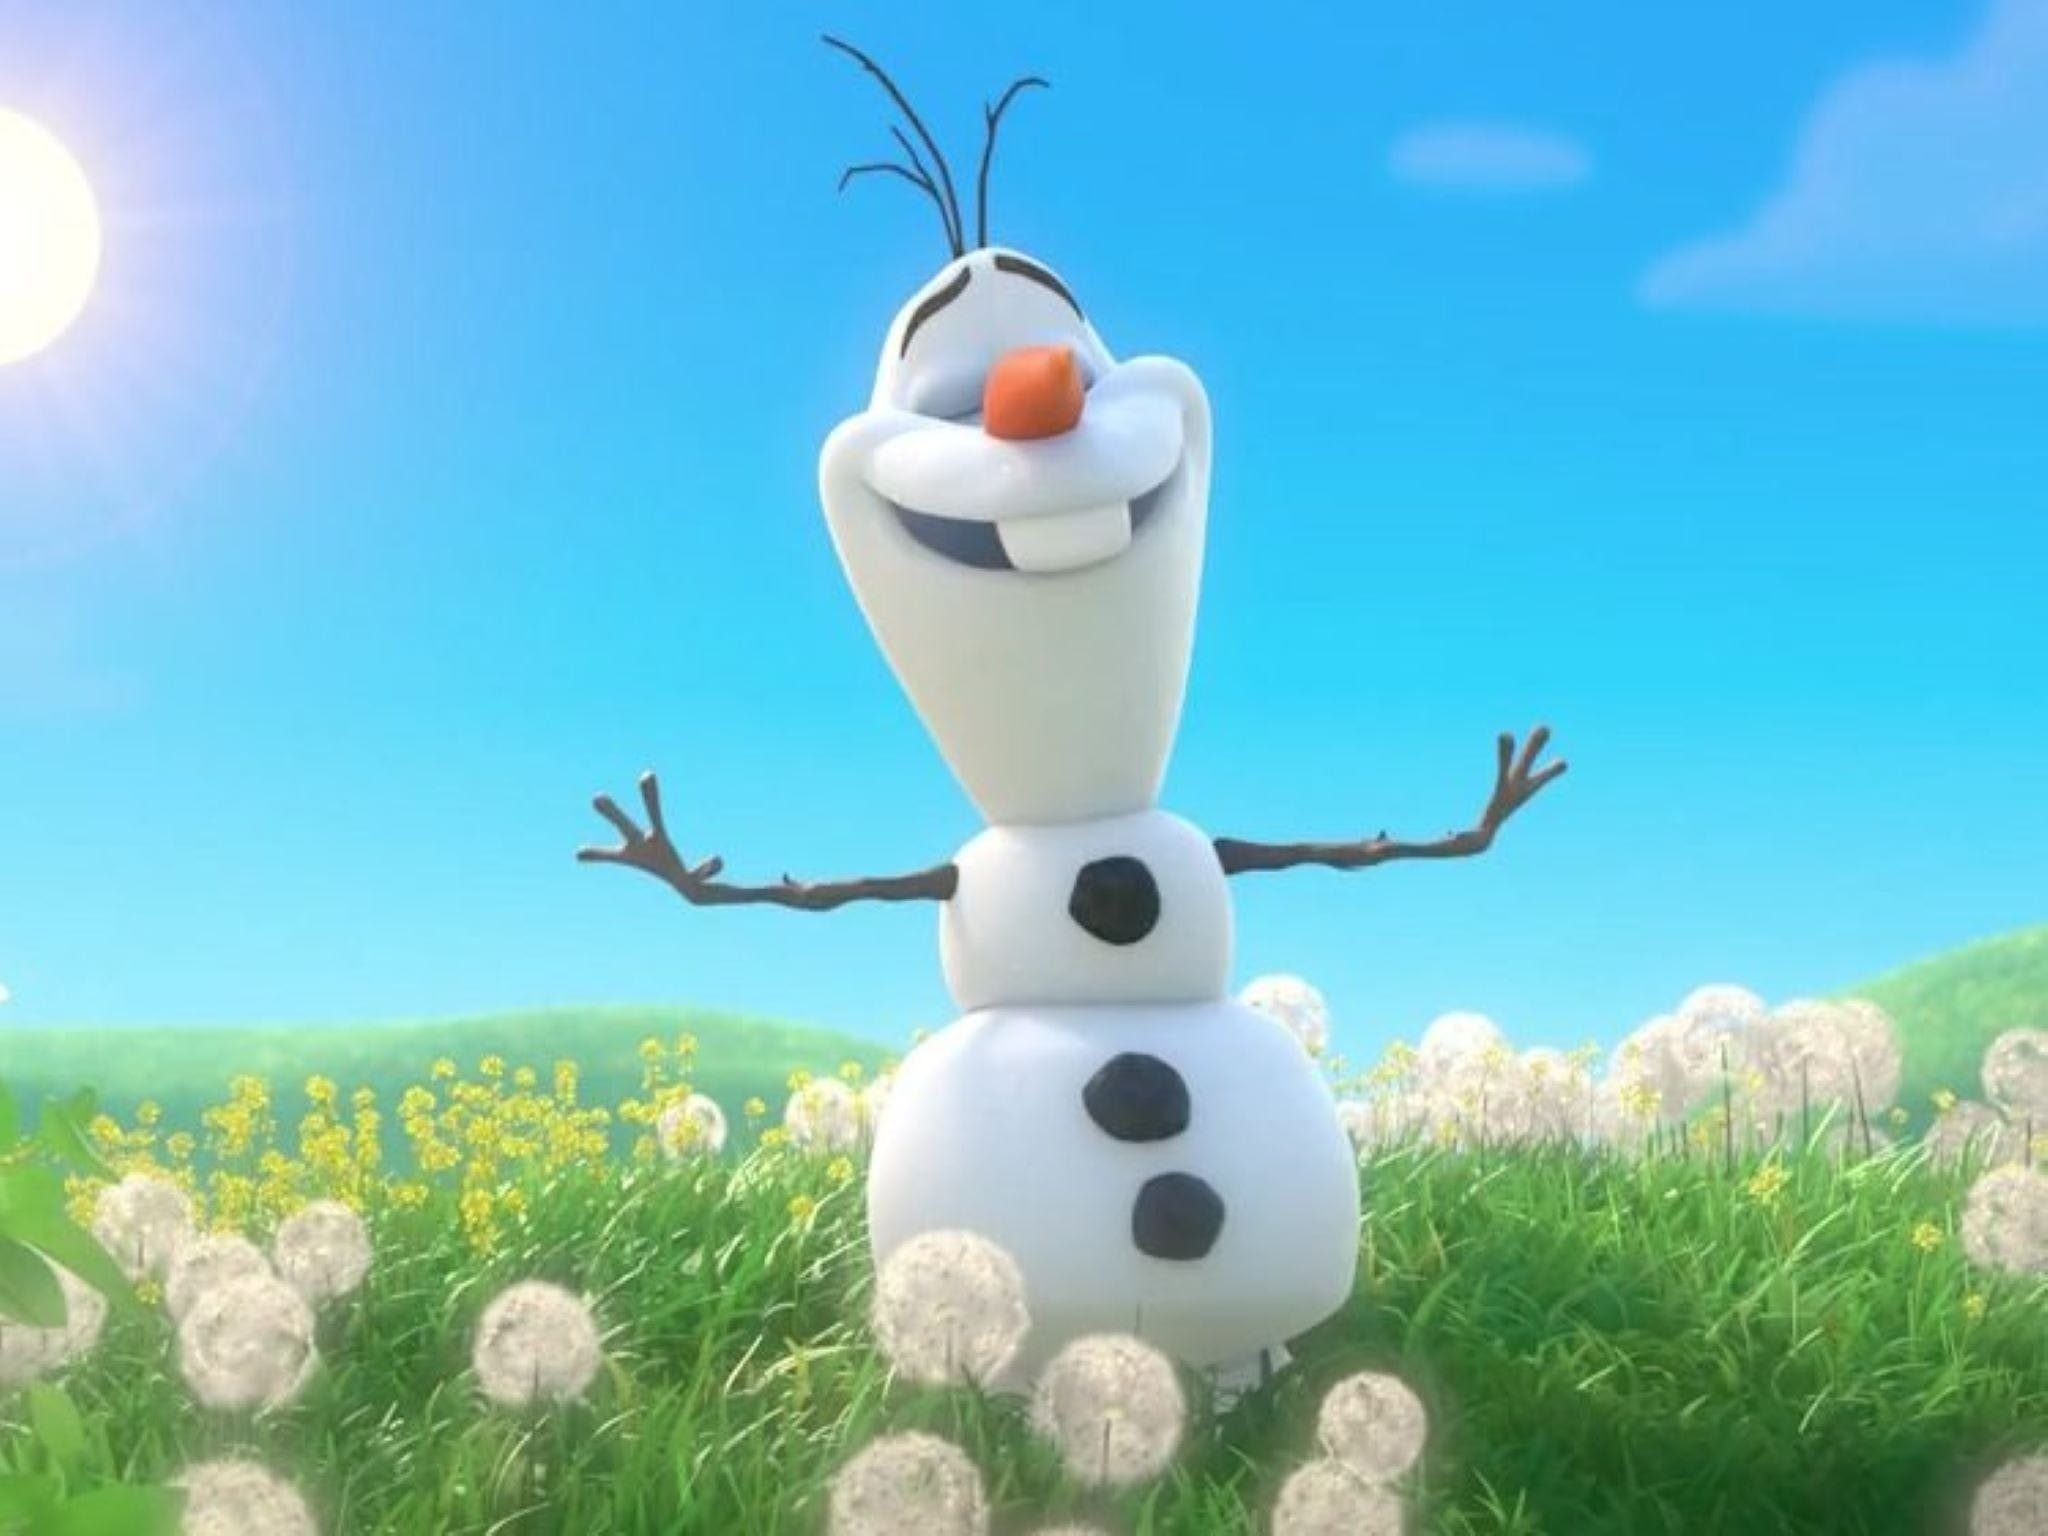 Meet Olaf from Frozen - Accommodation Tasmania